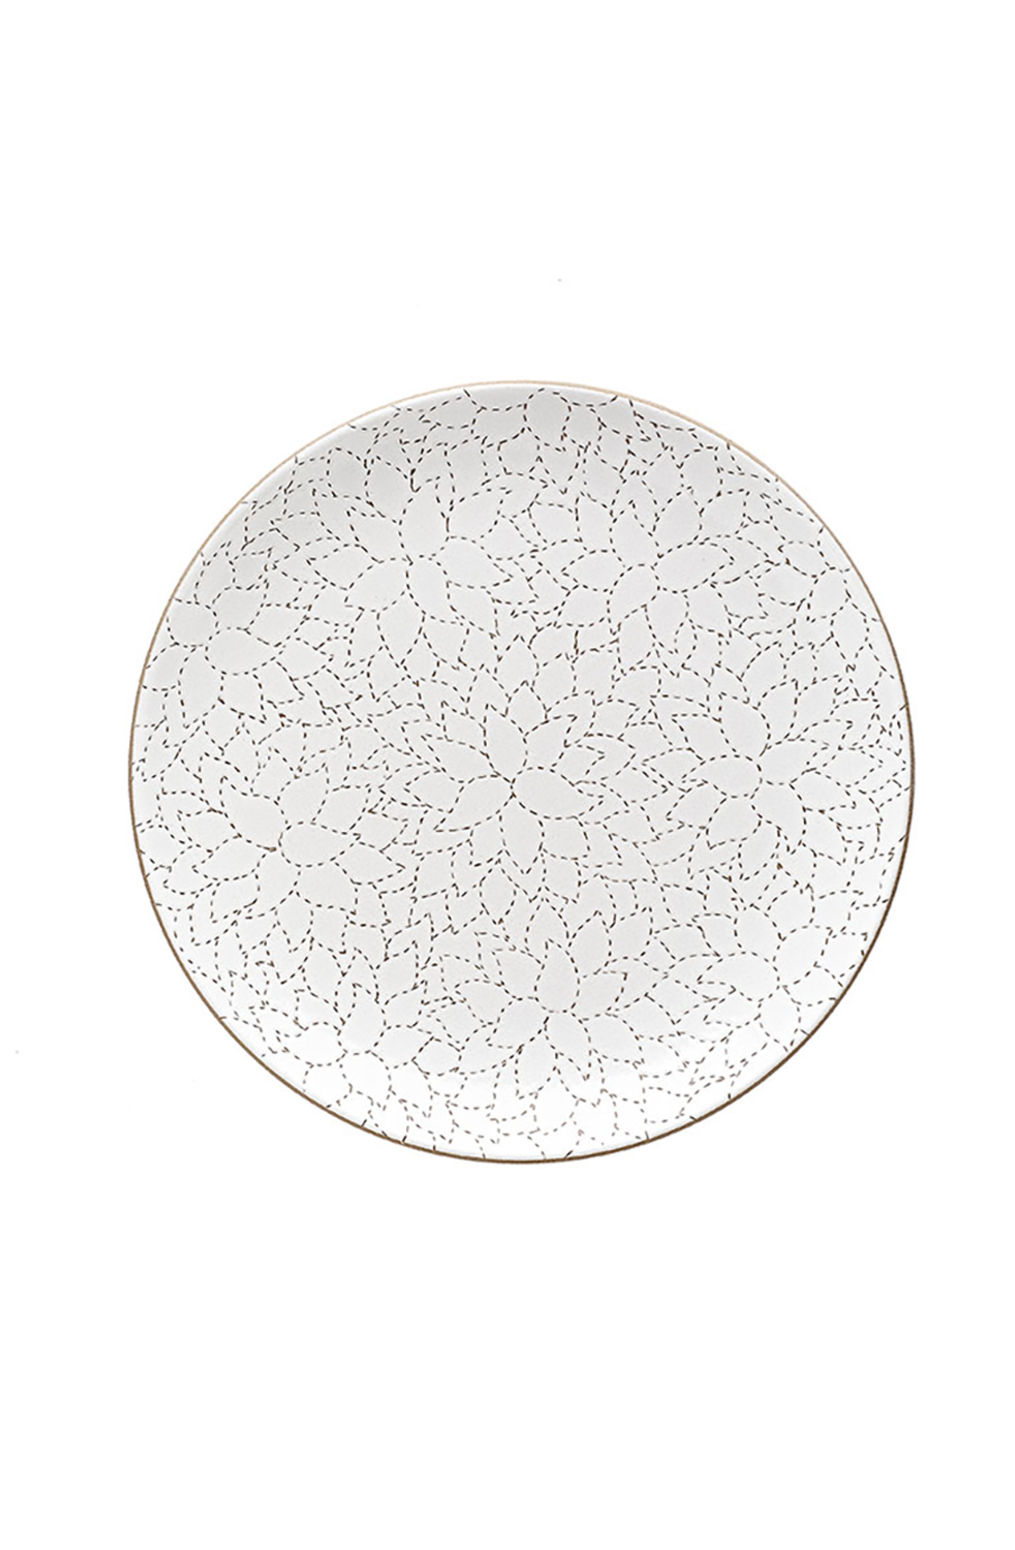 Heath ceramics alabama chanin camellia etched dinner plate2